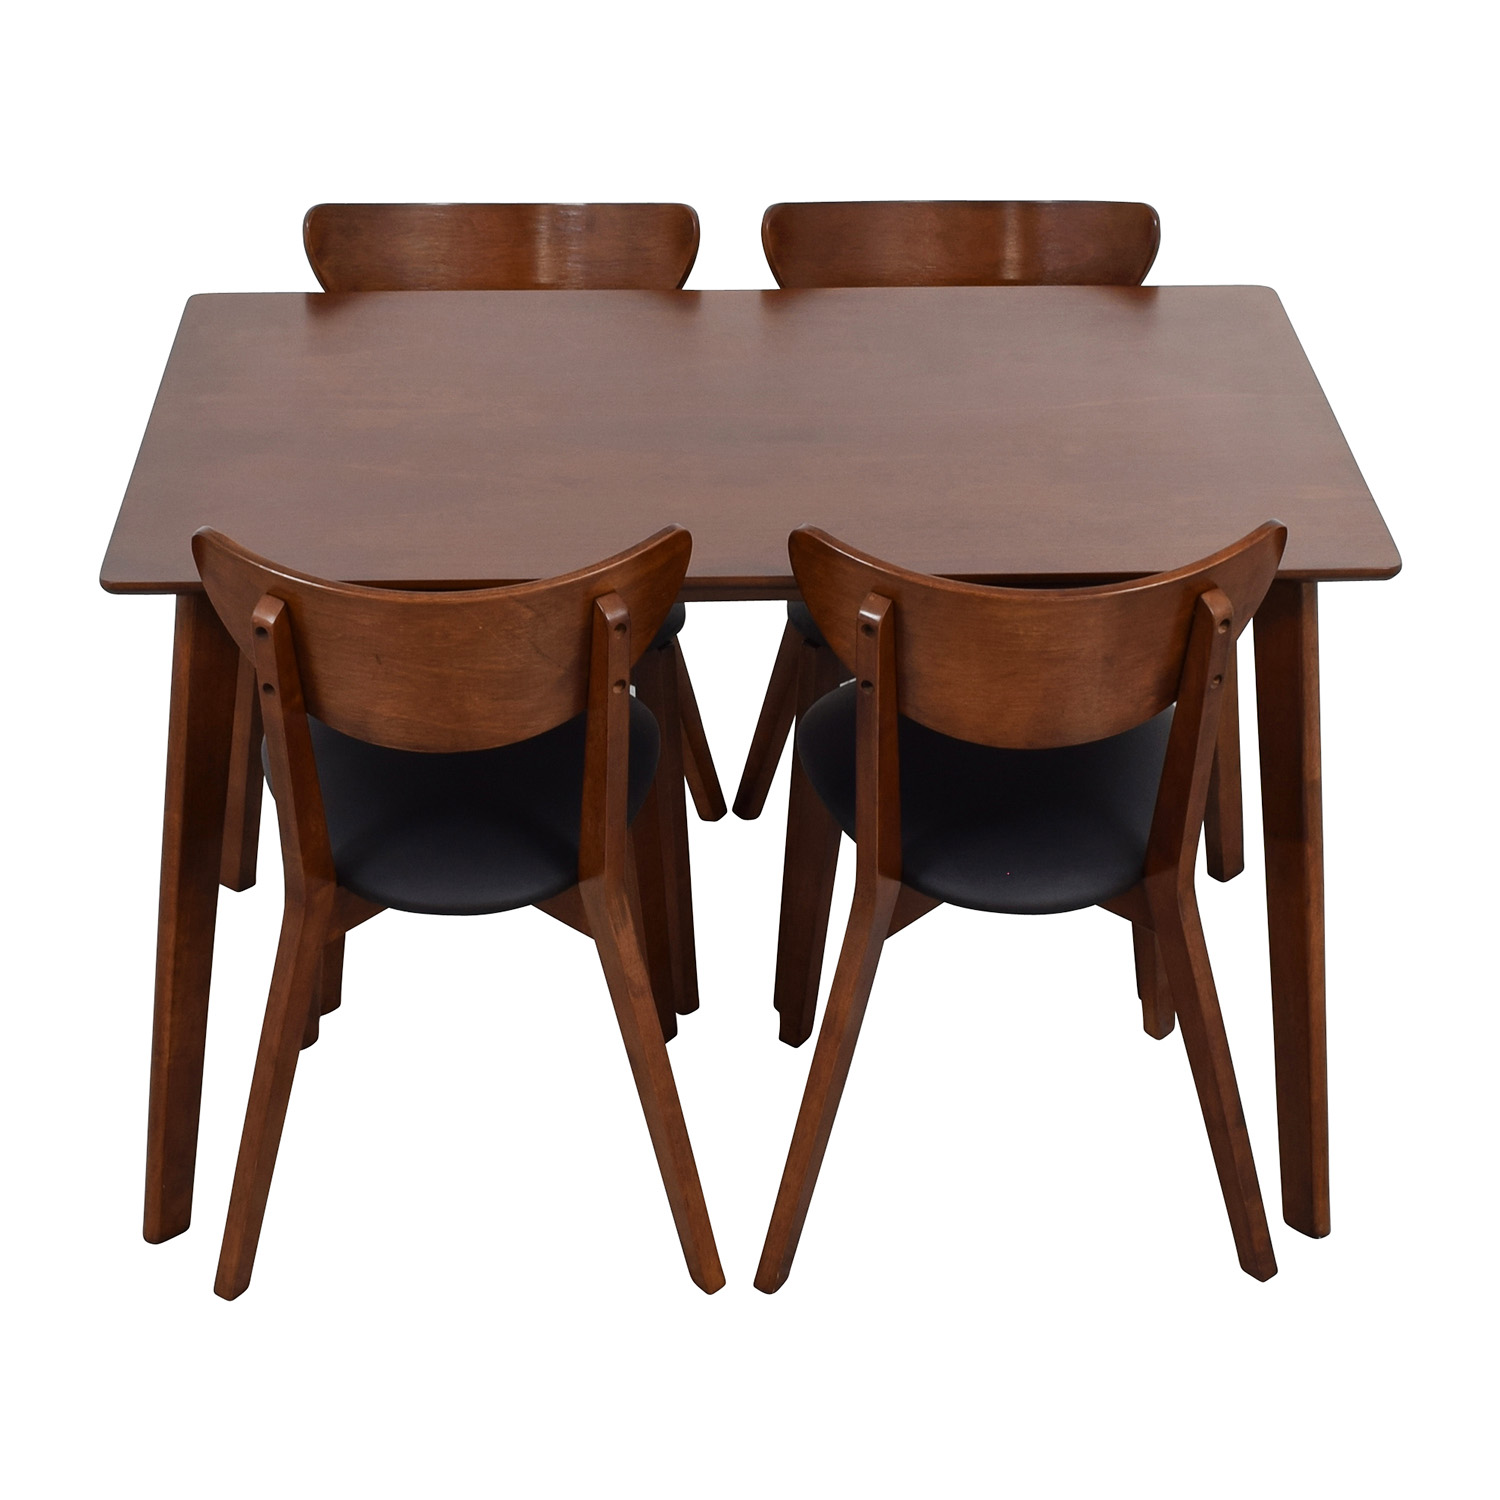 ... Wholesale Interiors Brown Dining Table Set with Four Chairs on sale ...  sc 1 st  Furnishare & 35% OFF - Wholesale Interiors Brown Dining Table Set with Four ...